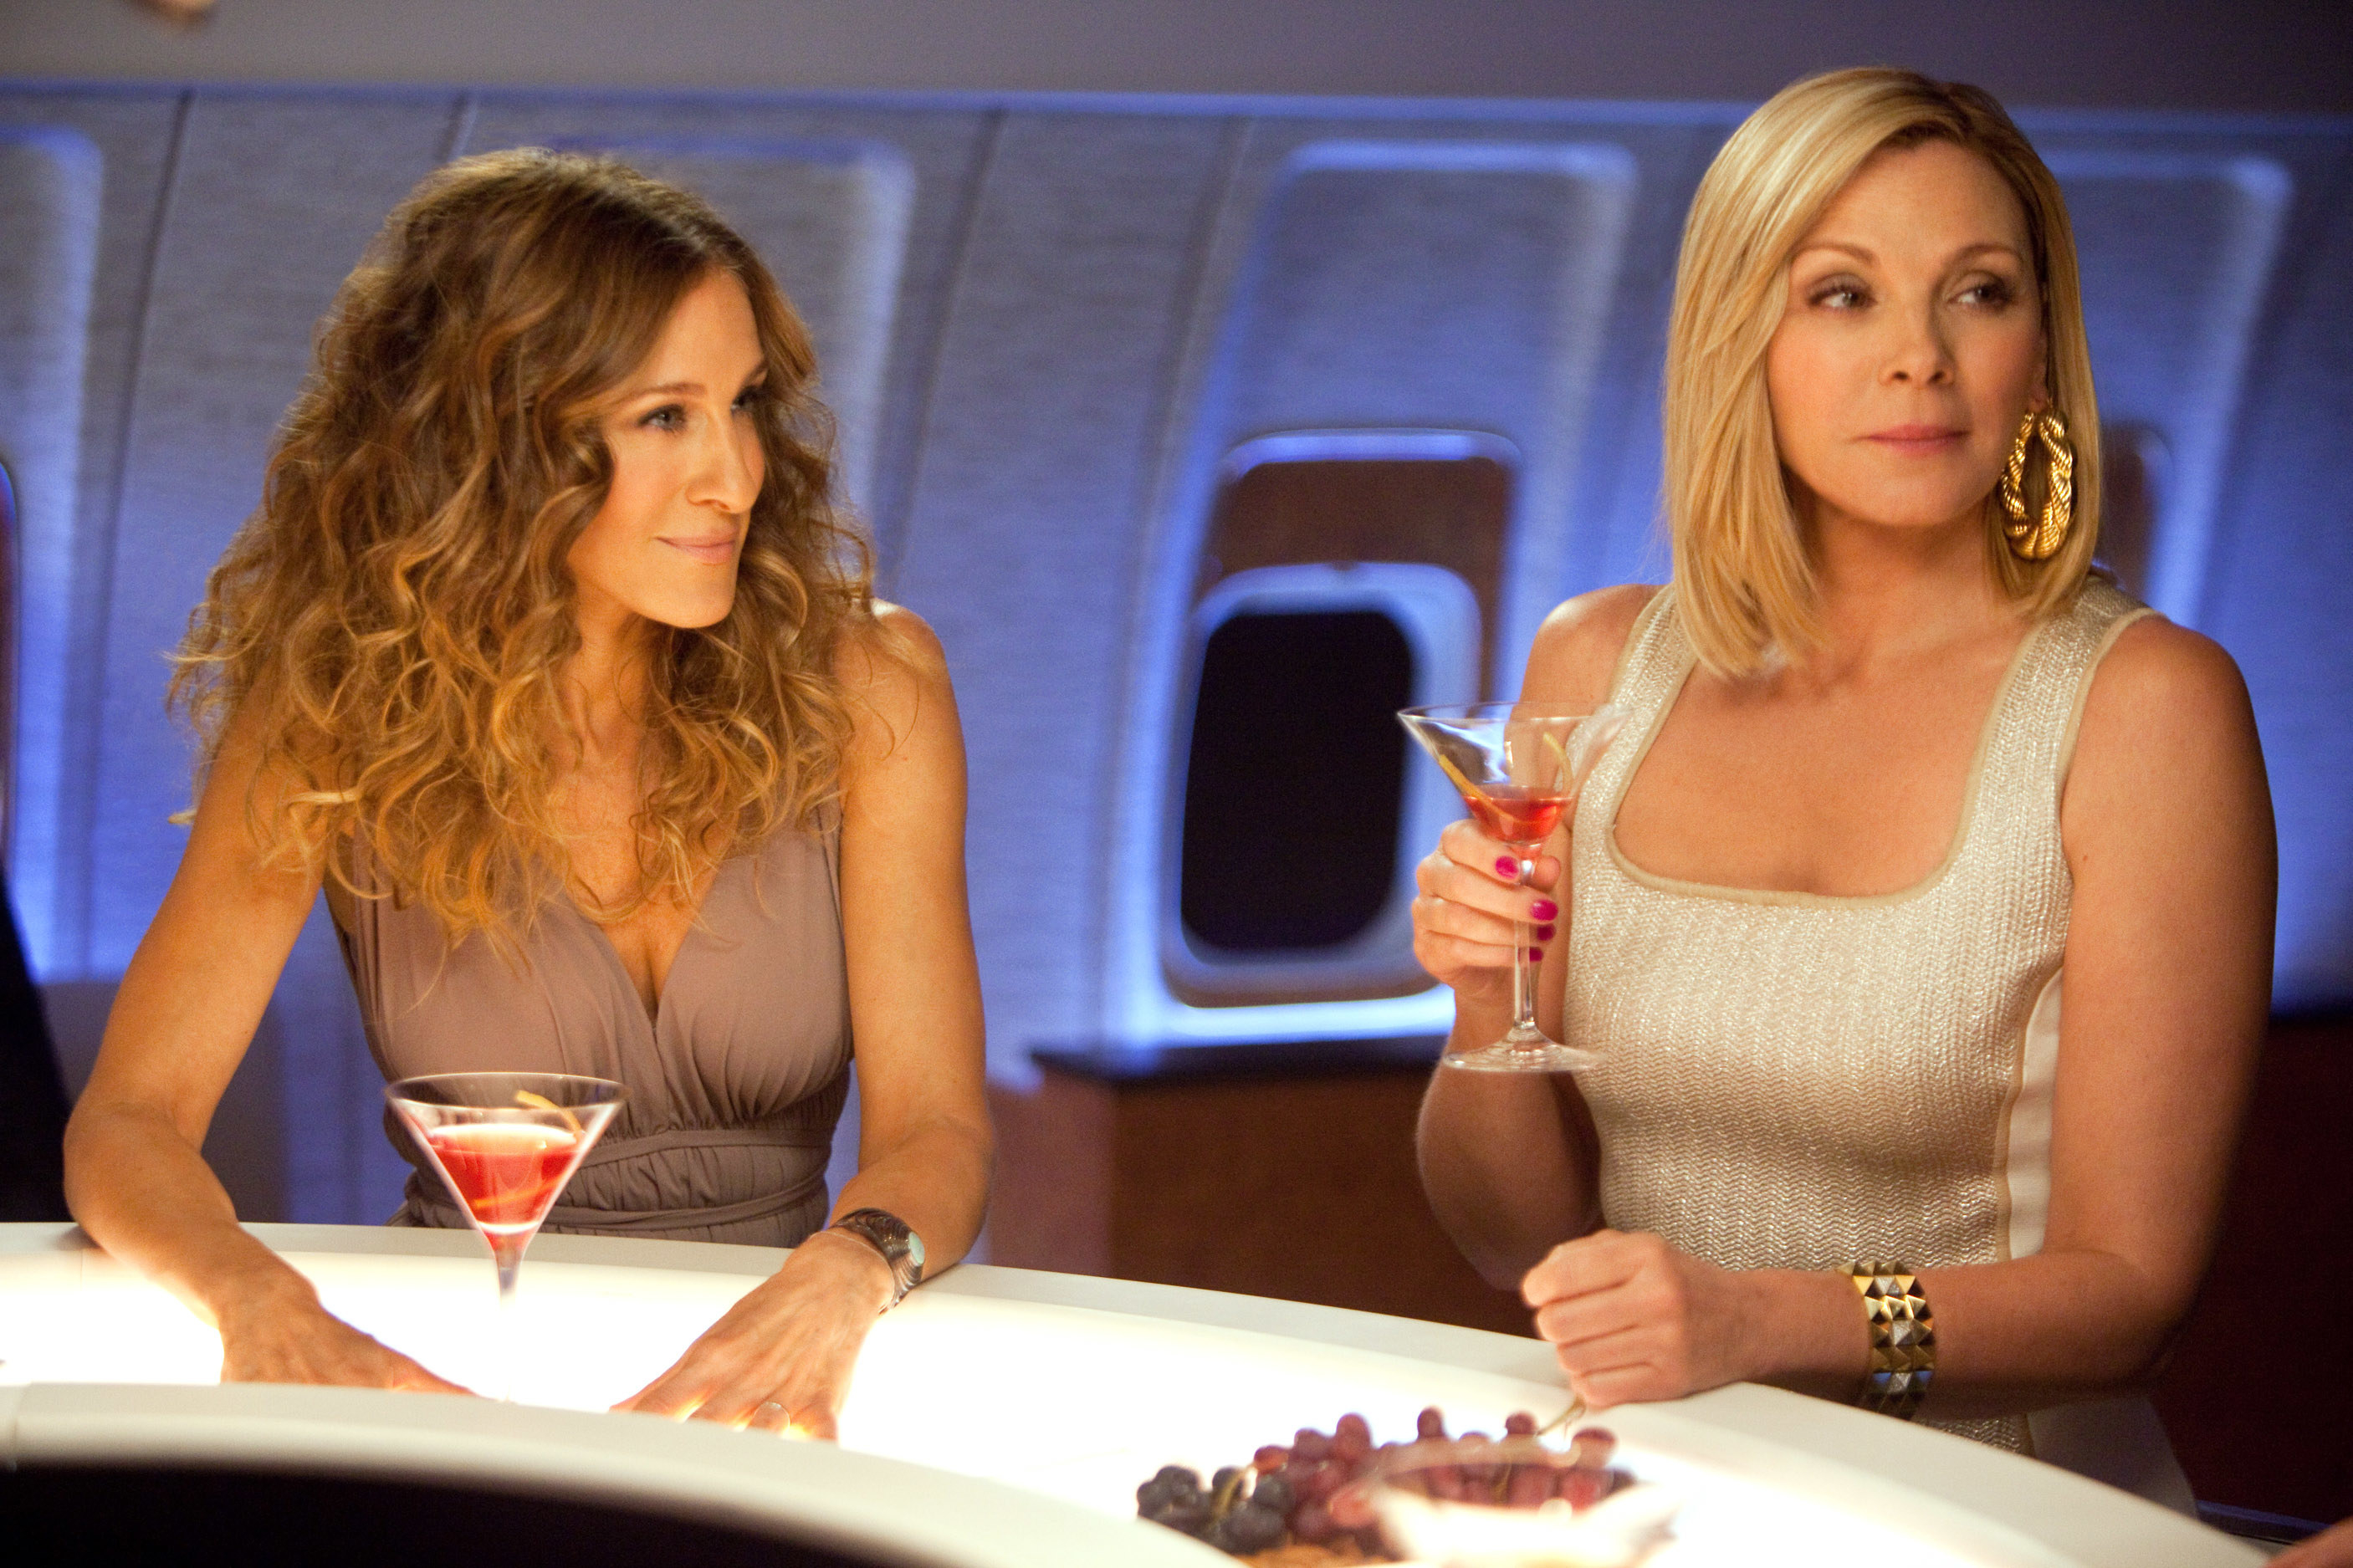 Carrie and Samantha share a drink